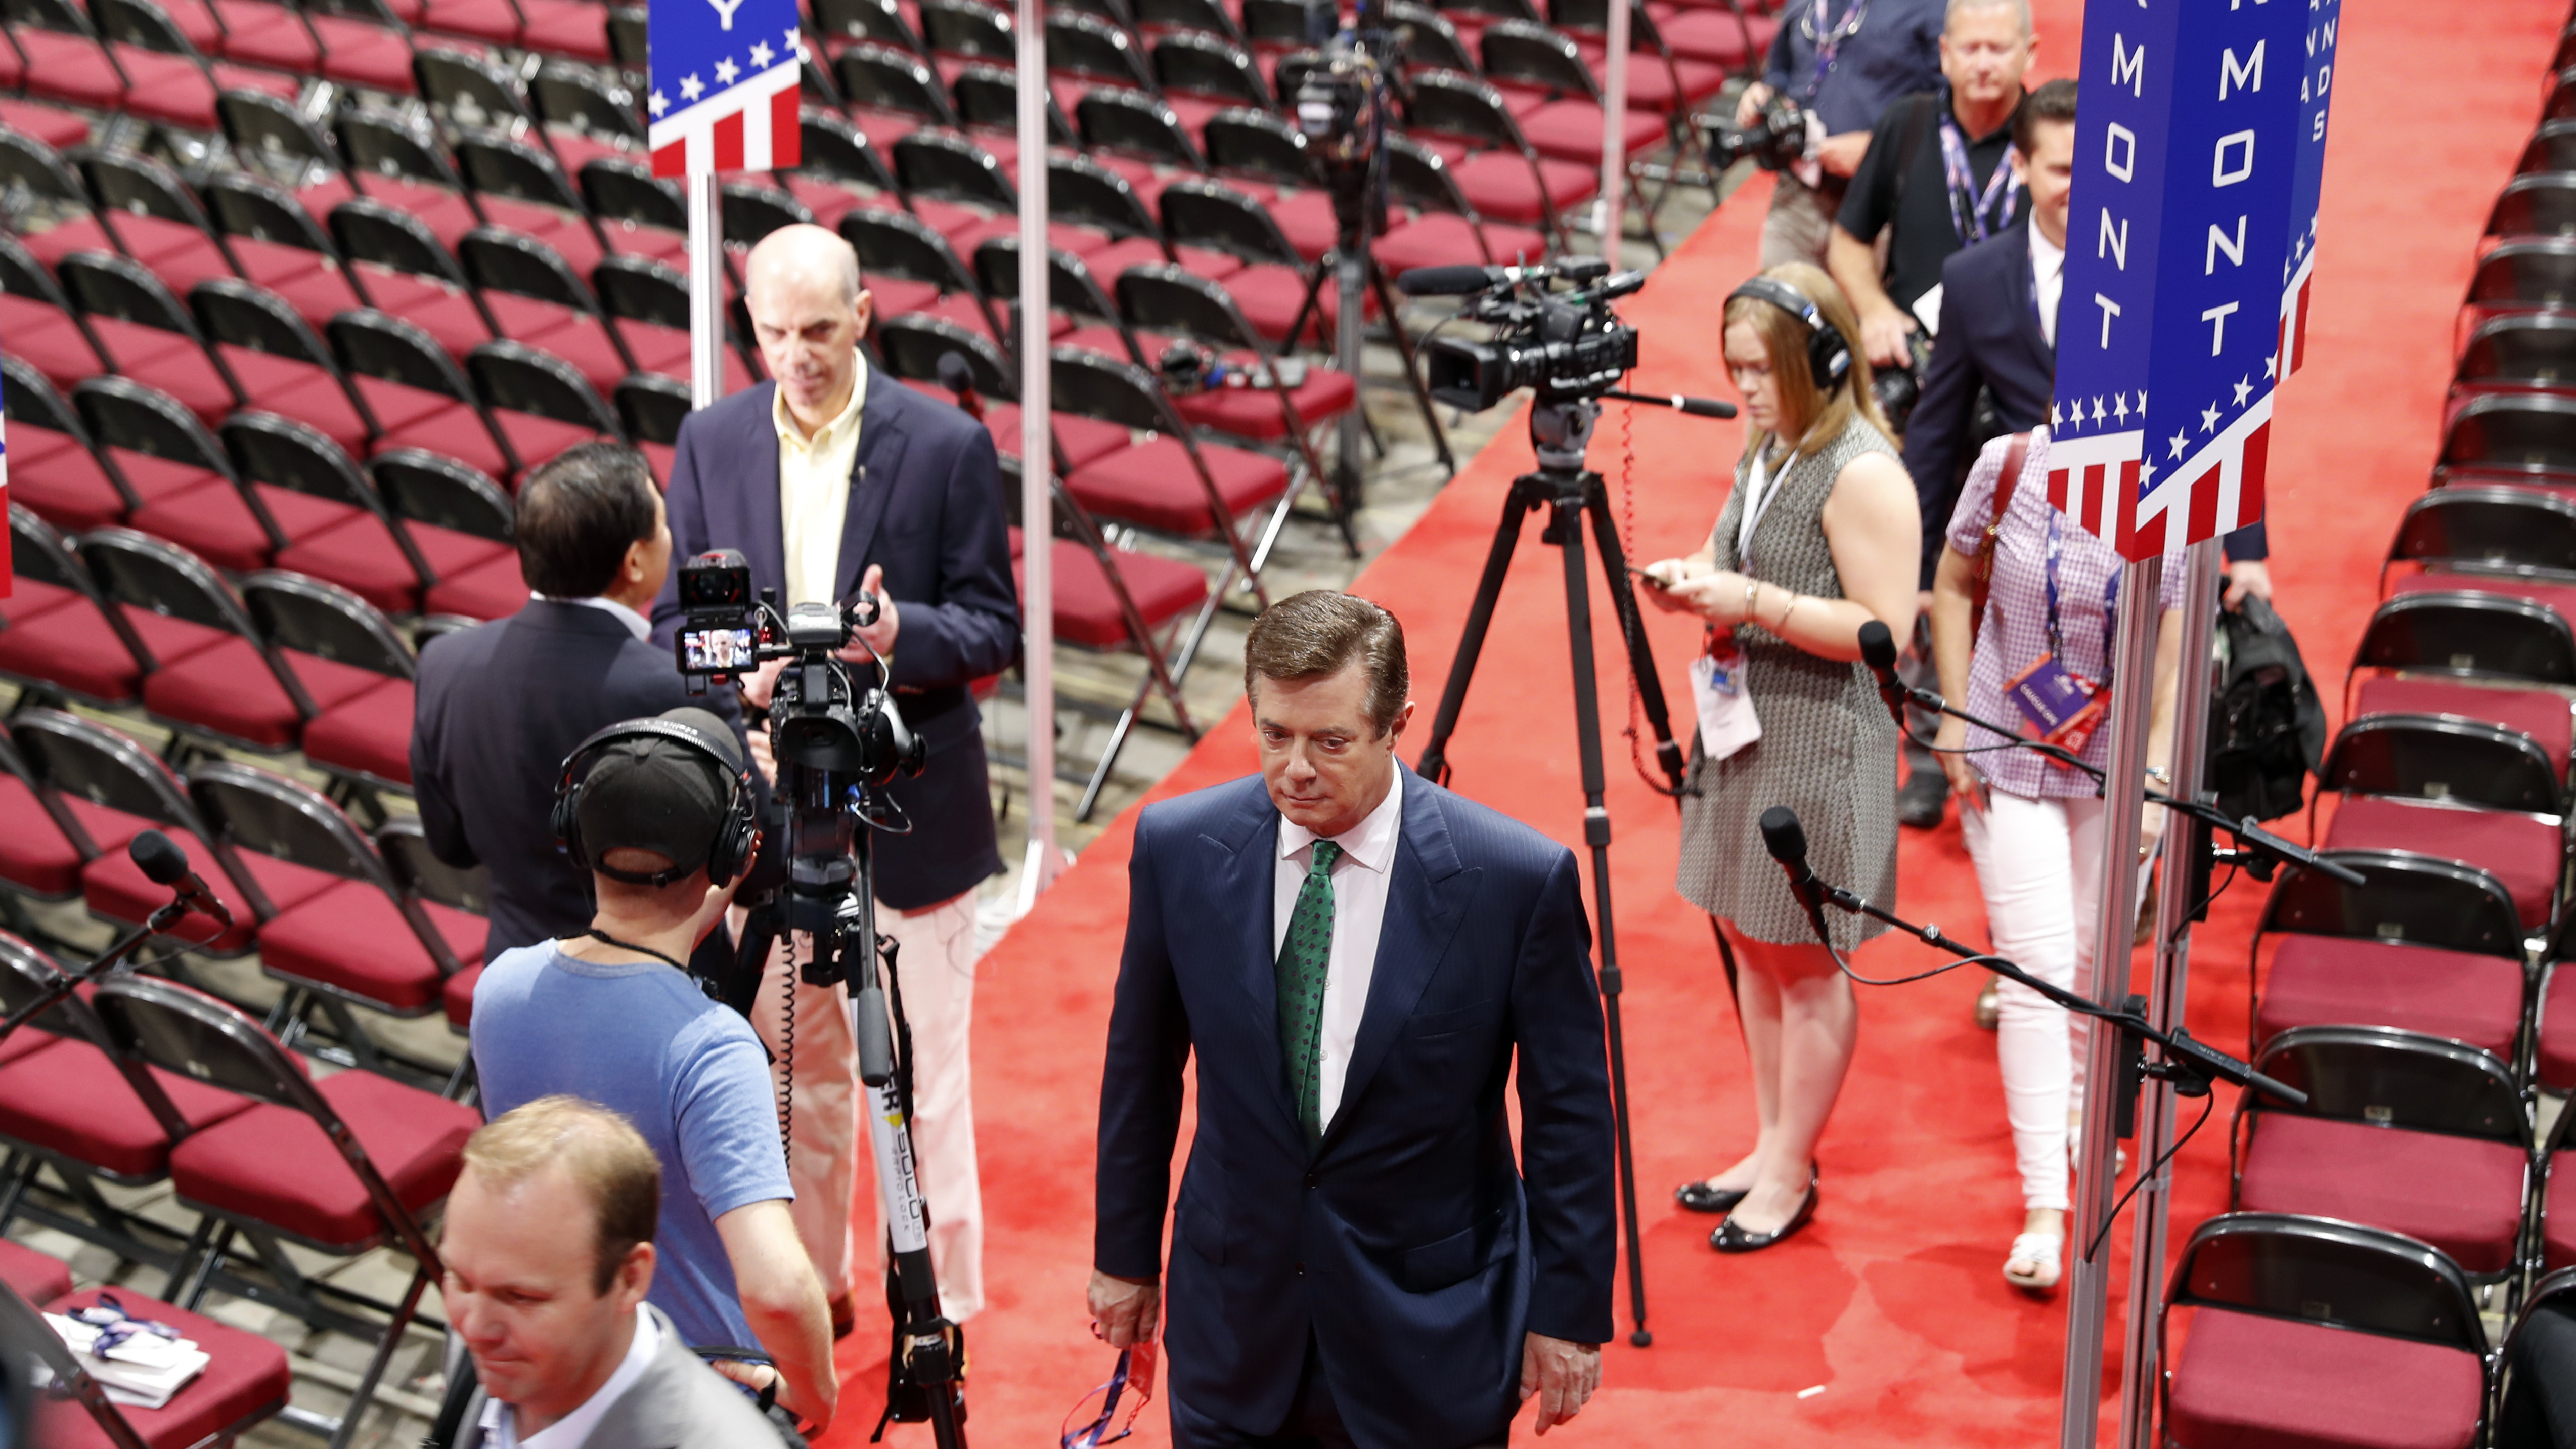 Trump campaign Chairman Paul Manafort walks off the floor of the Republican National Convention last month after talking to reporters. Photo by Carolyn Kaster/Associated Press)